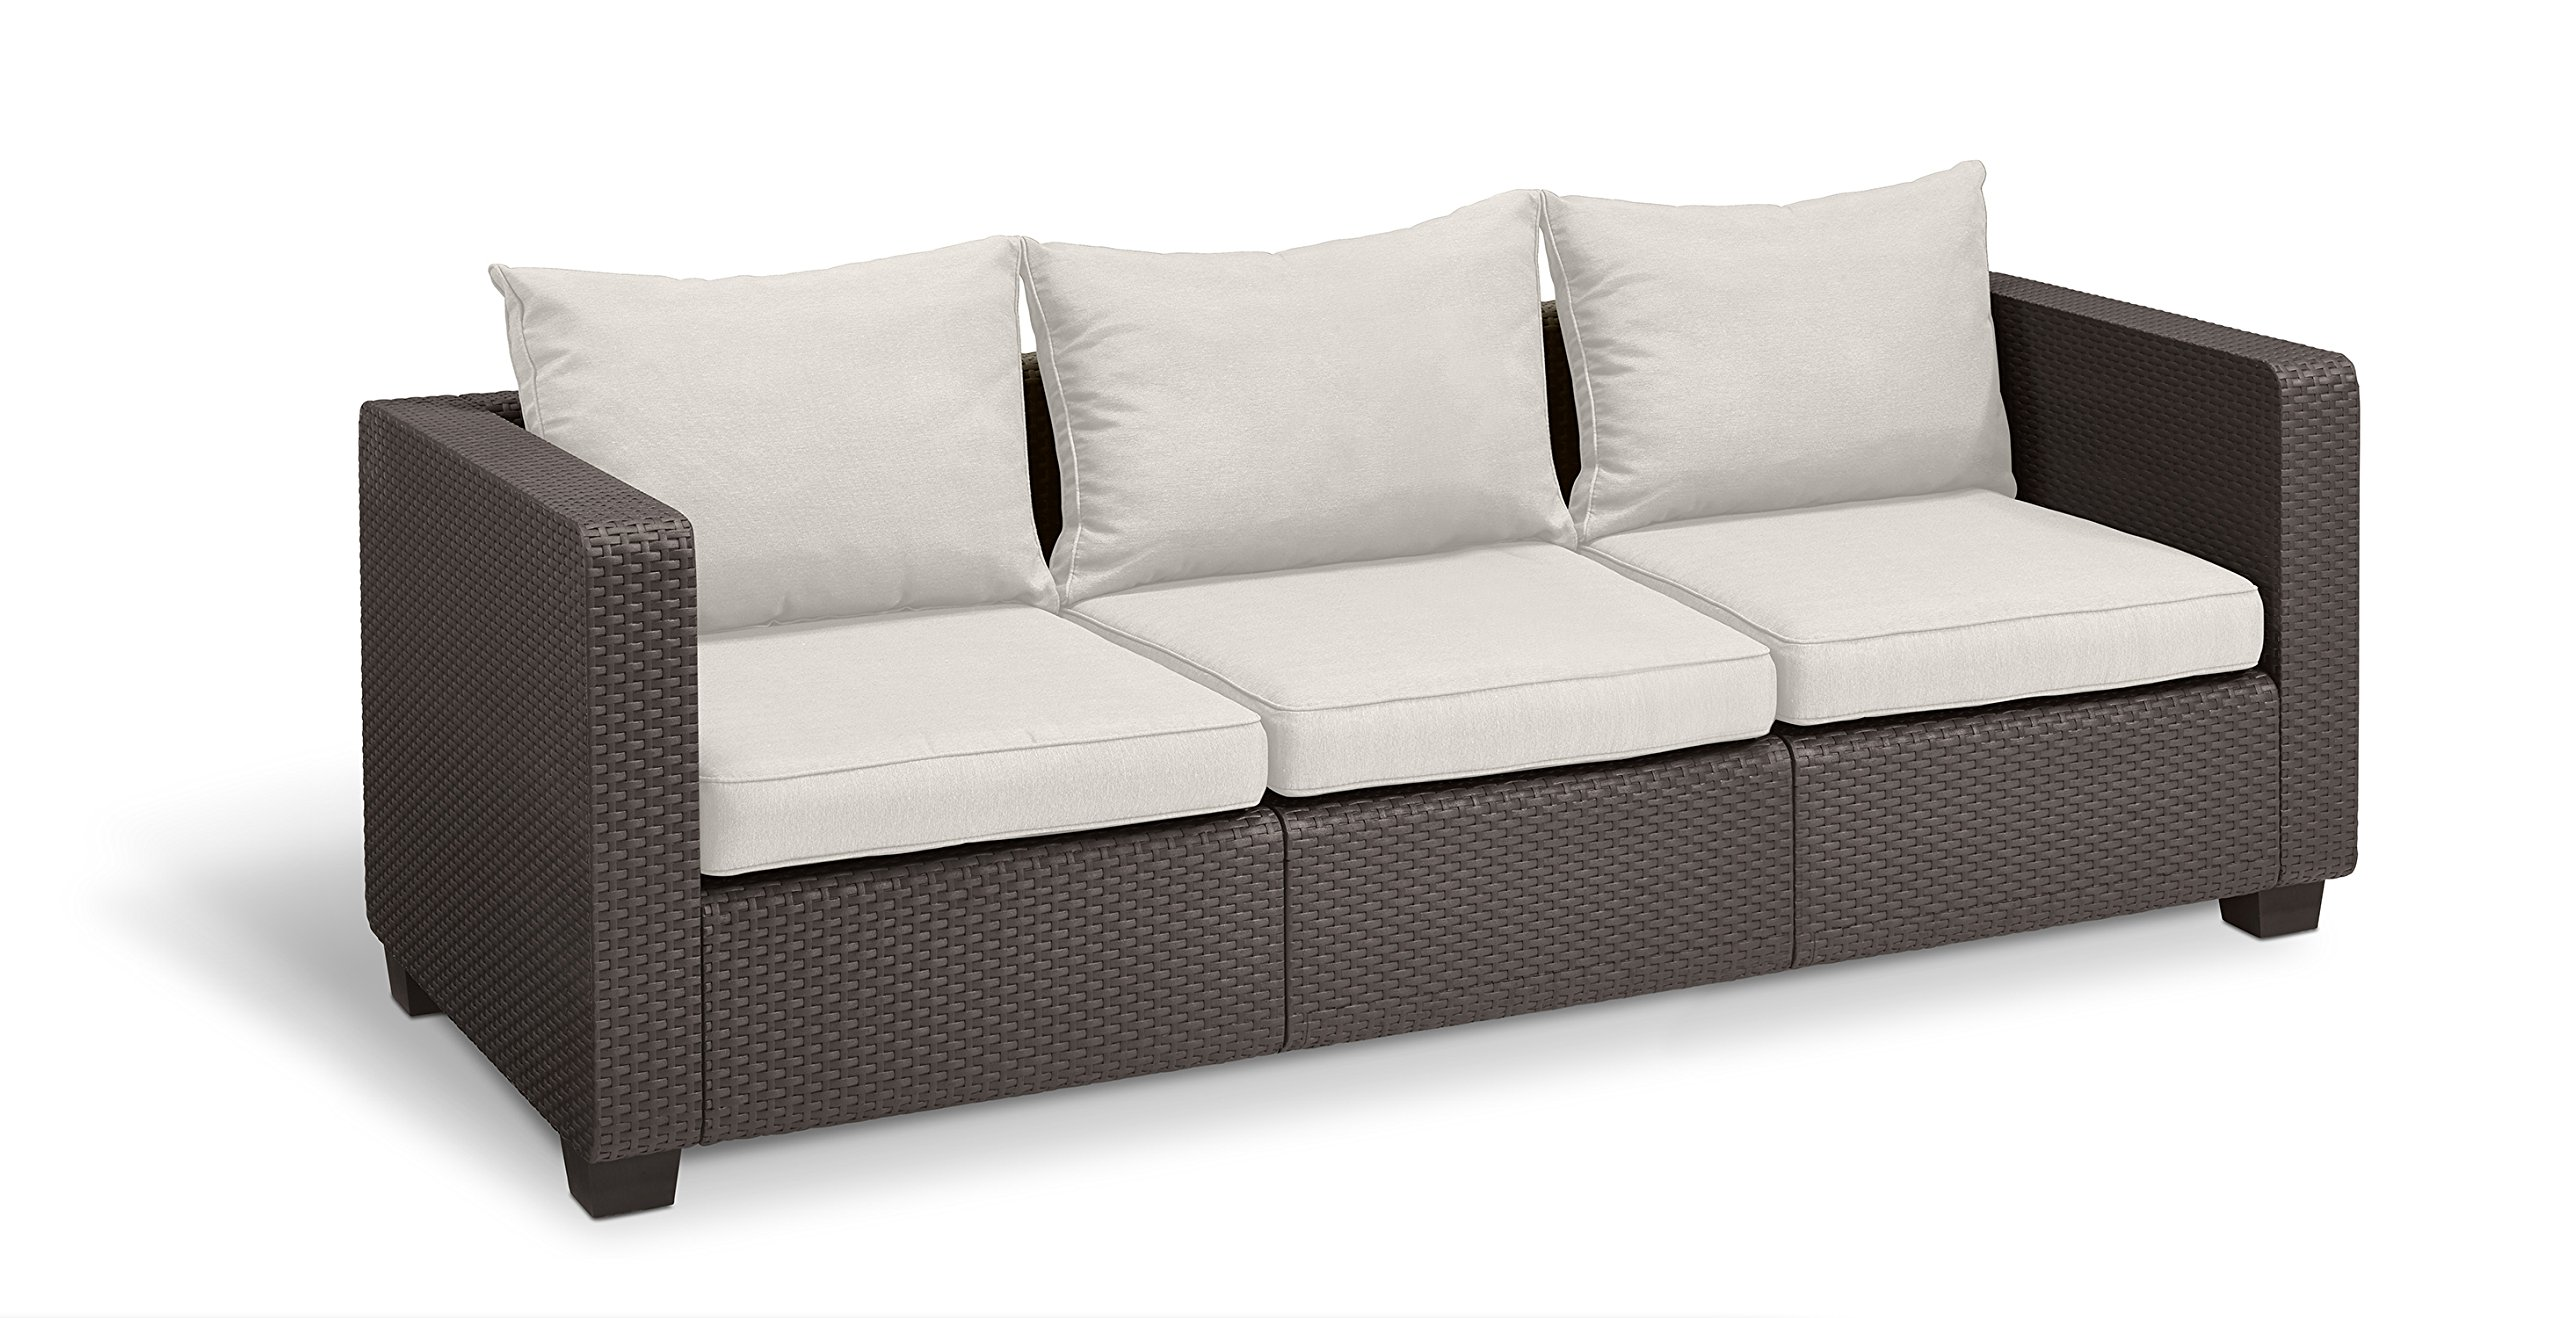 Keter Salta 3-Seater Seating Patio Sofa with Sunbrella Cushions in a Resin Plastic Wicker Pattern, Rich Brown by Keter